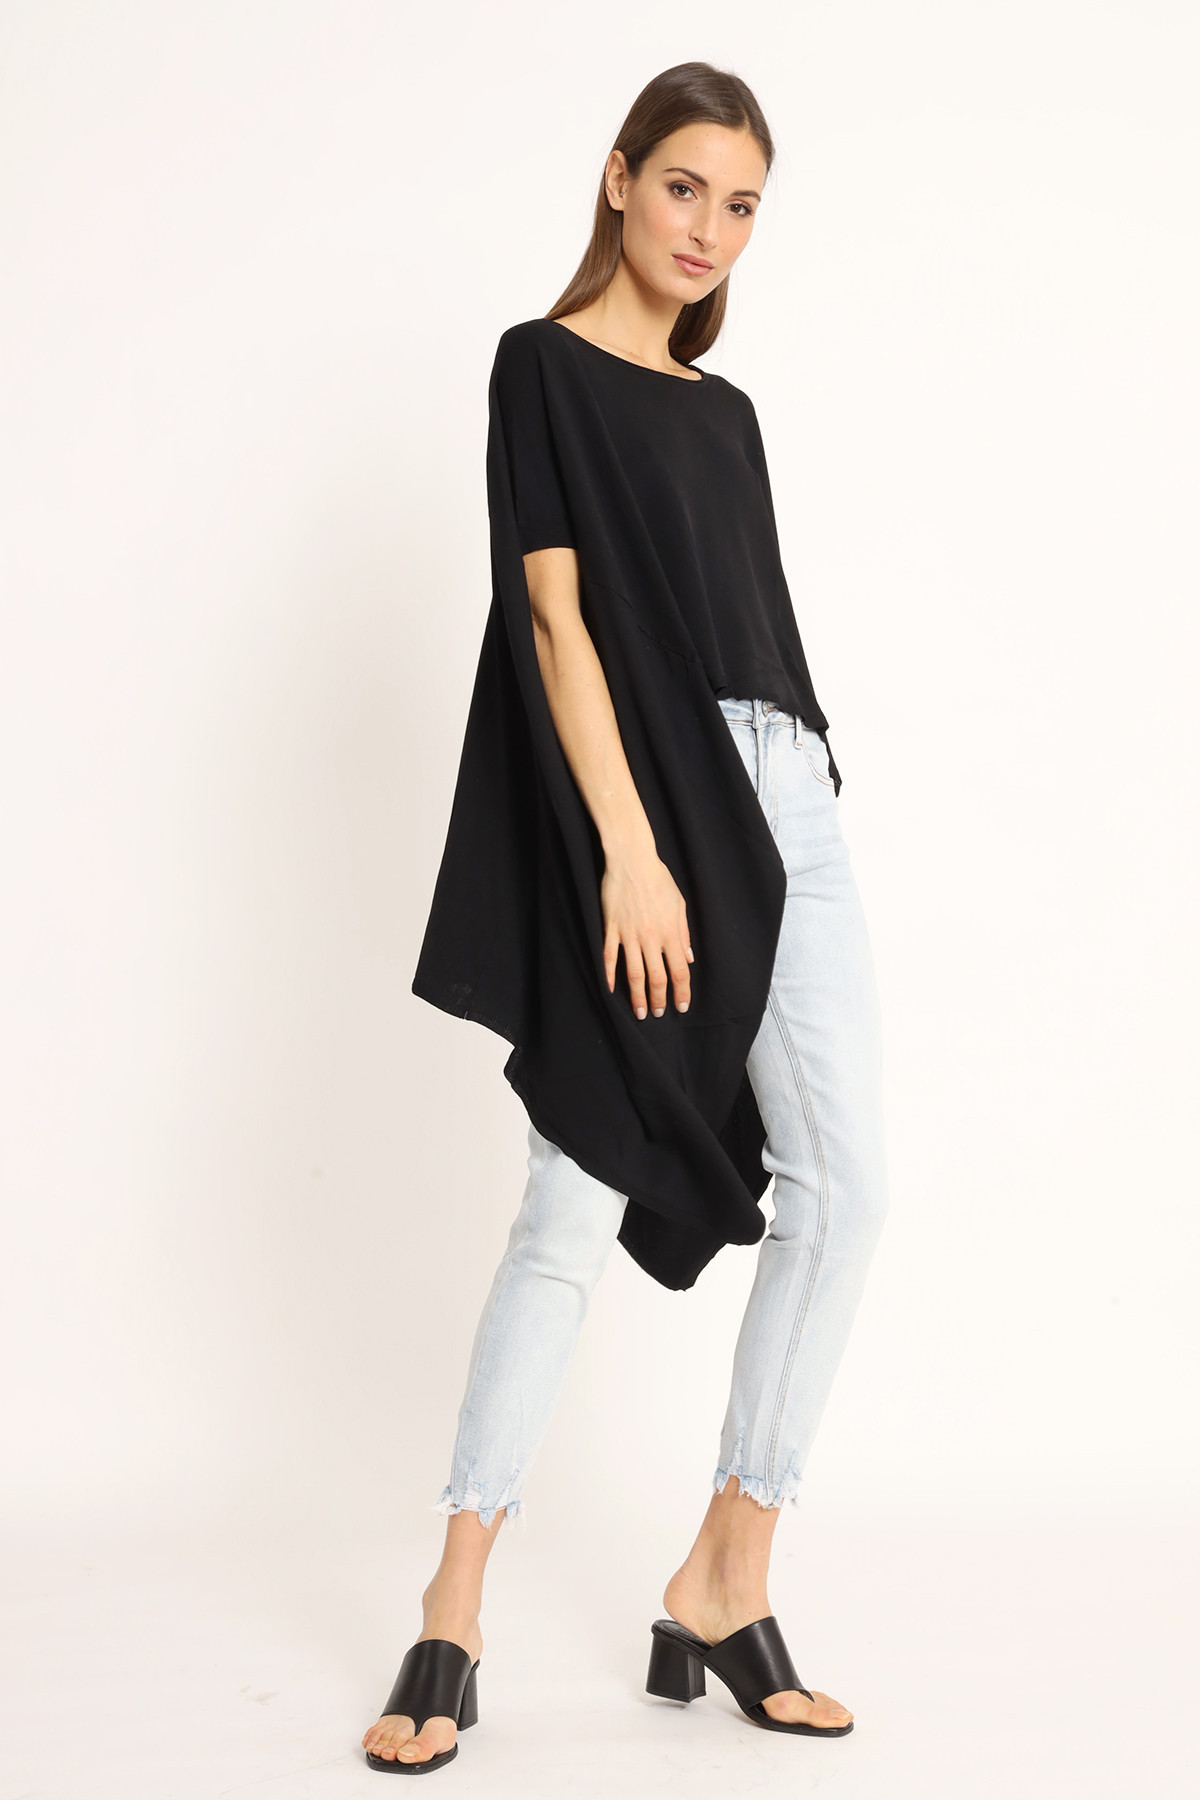 Poncho Style Over Sweater